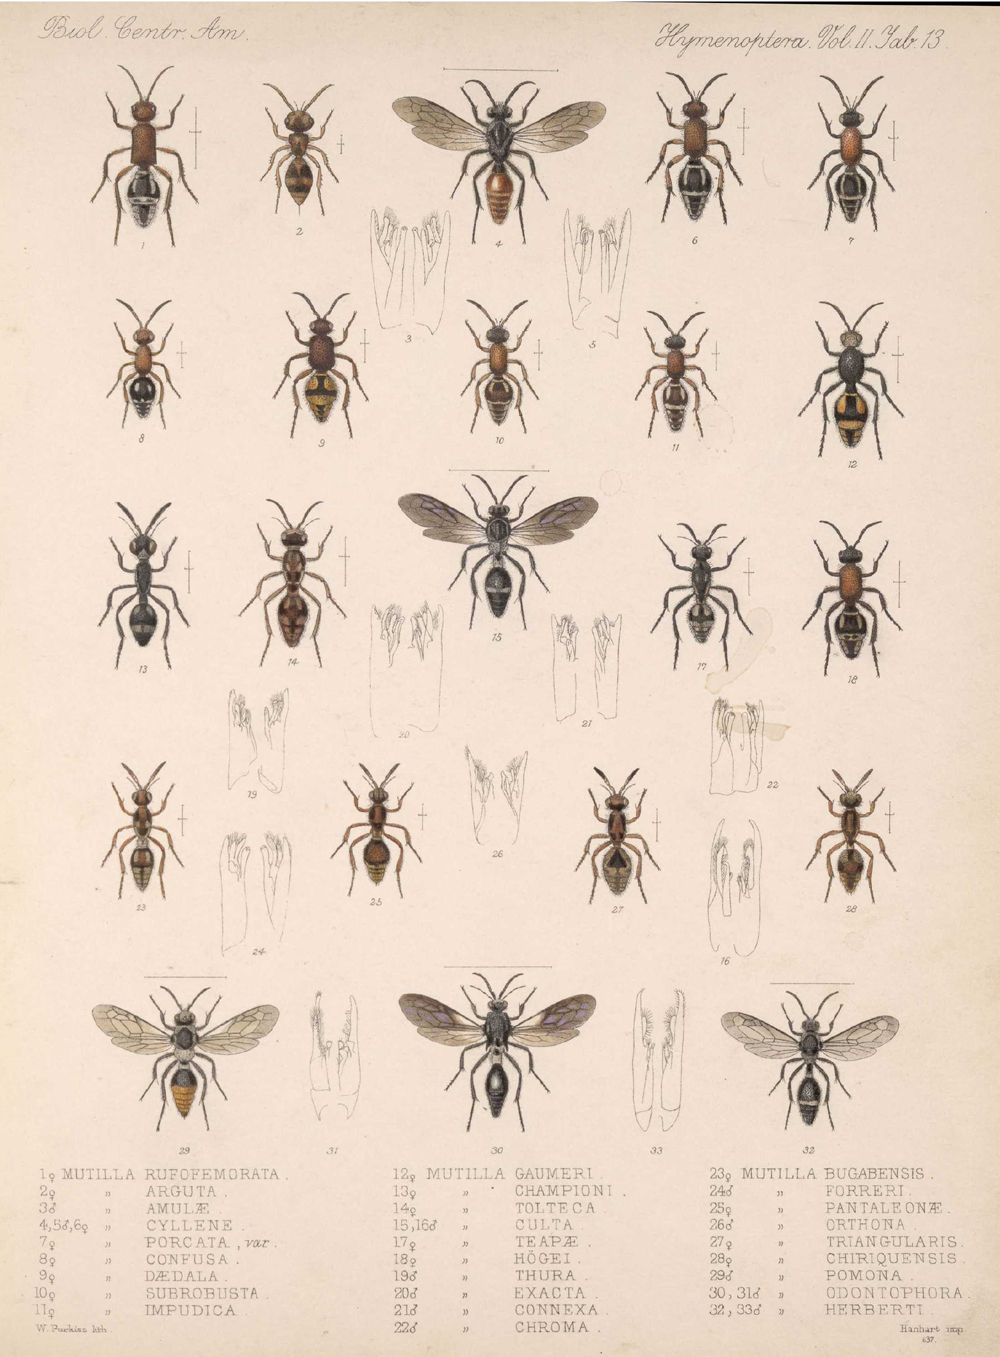 Other Insects,  Image number:bca_13_02_00_451